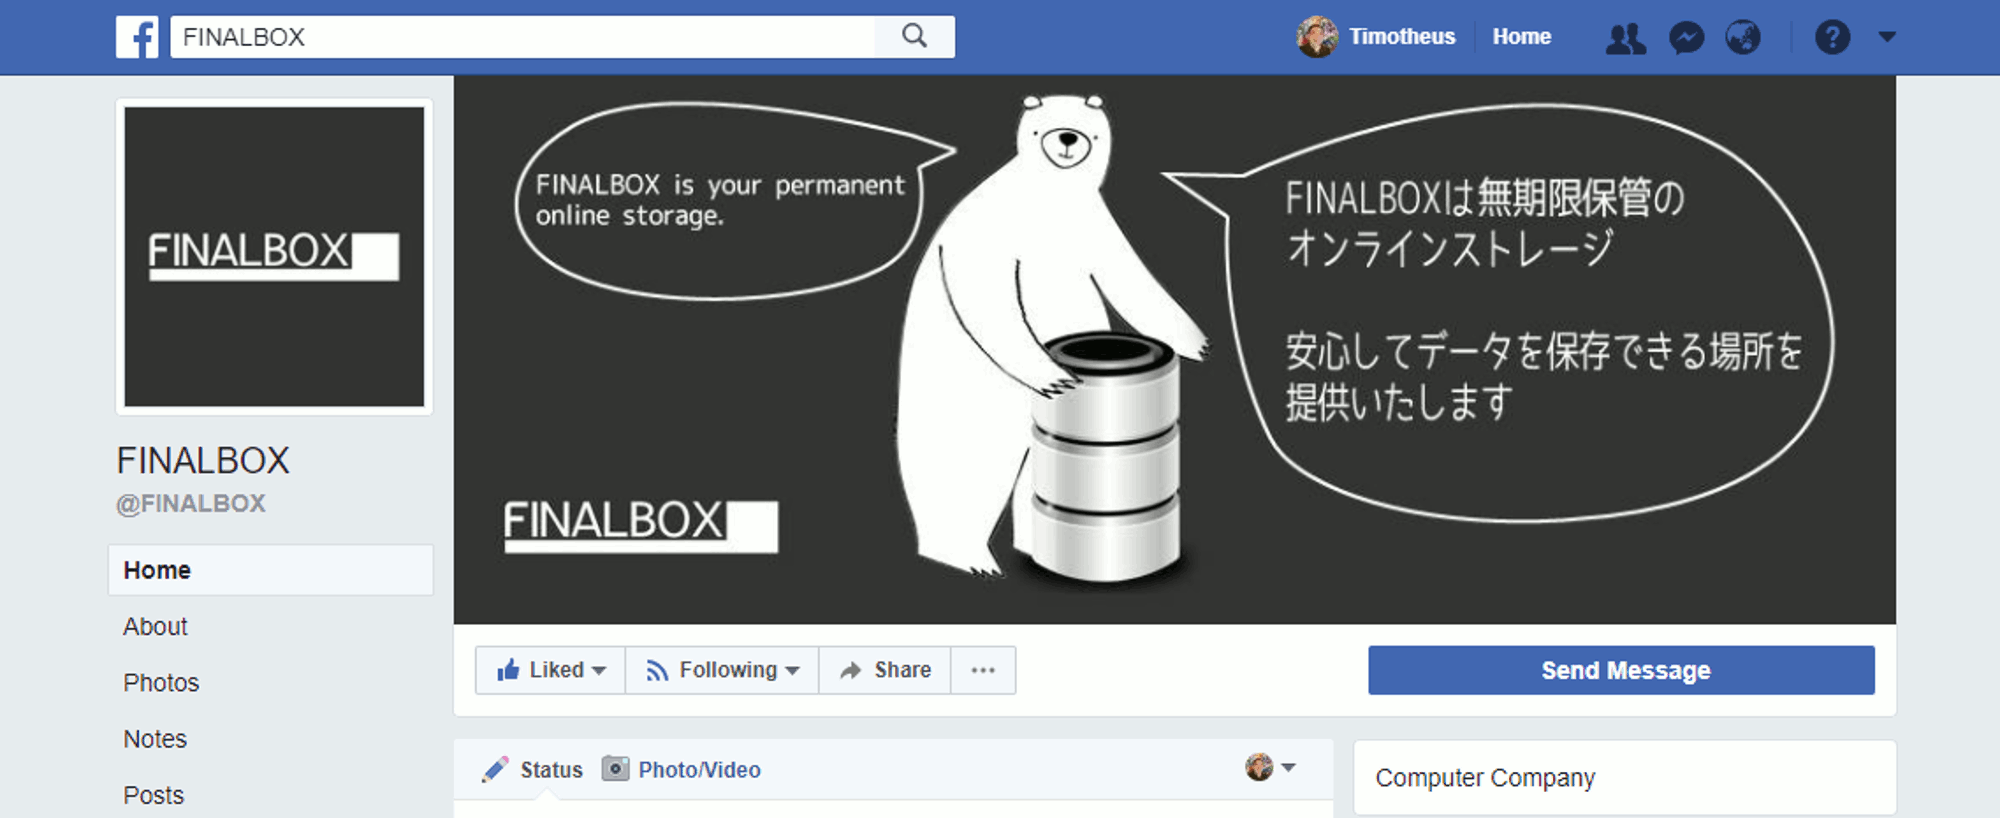 Digital Marketing Consultant Singapore - Portfolio - Facebook Marketing - FinalBox Header